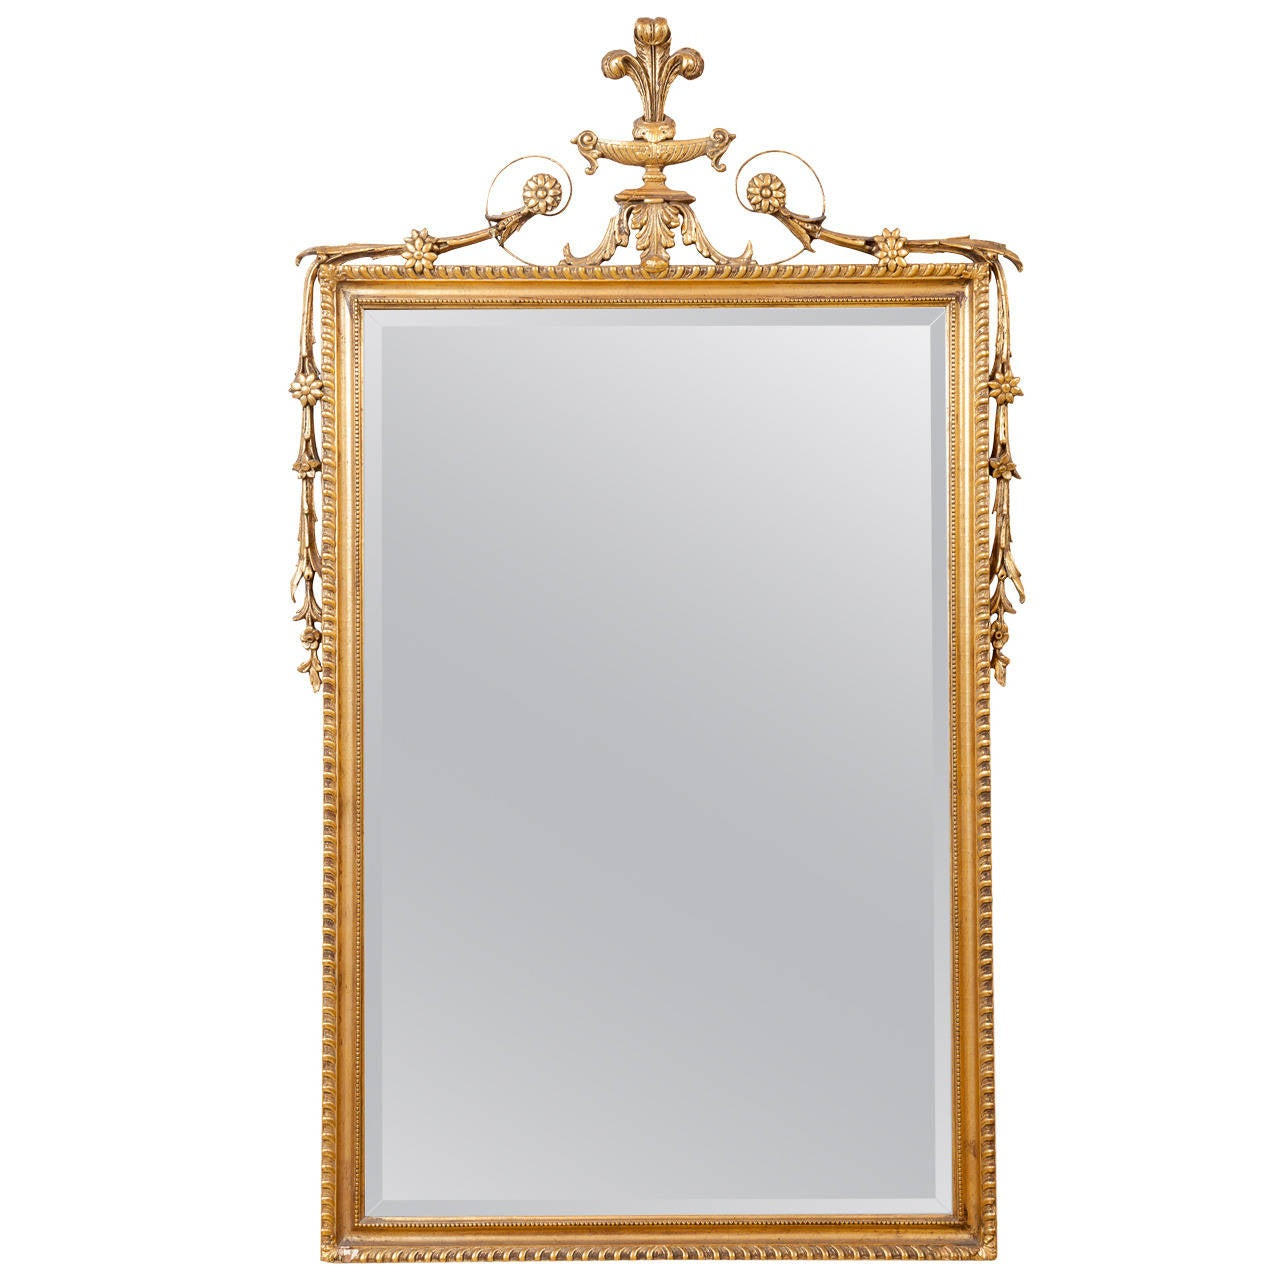 19th century english giltwood mirror for sale at 1stdibs for Mirrors for sale